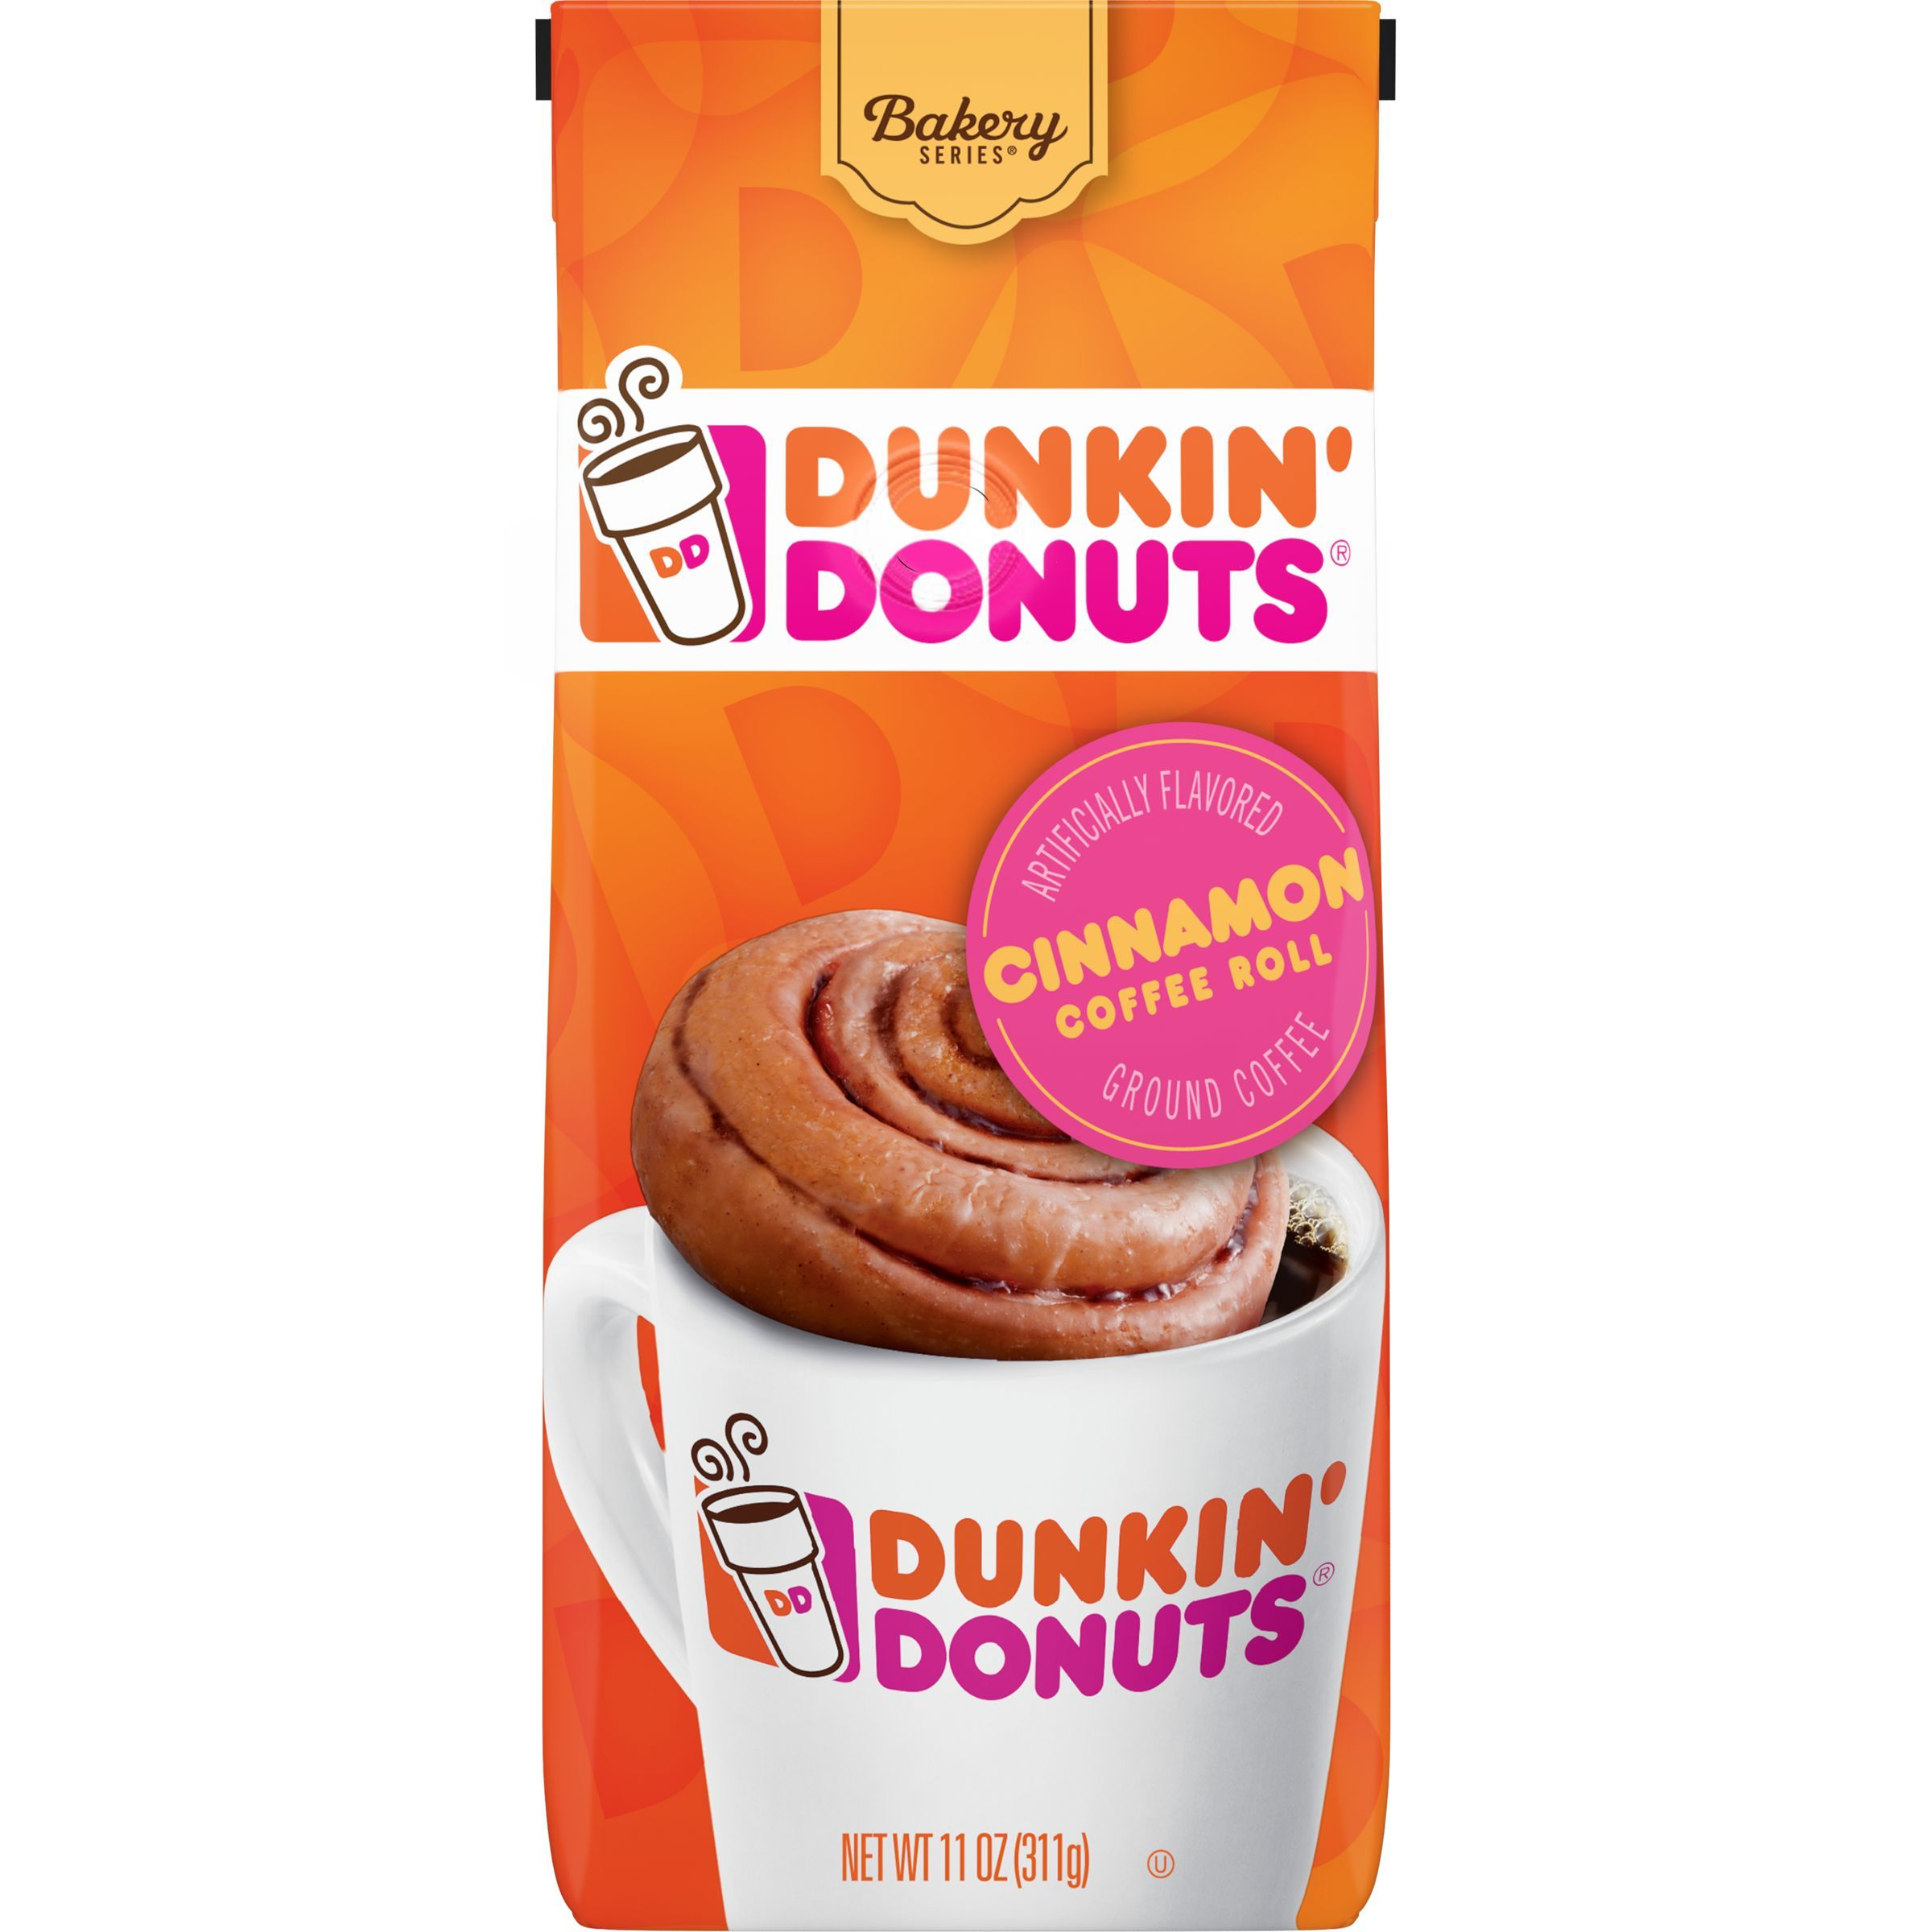 Dunkin Donuts Cinnamon Coffee Roll Nutrition Facts in 2020